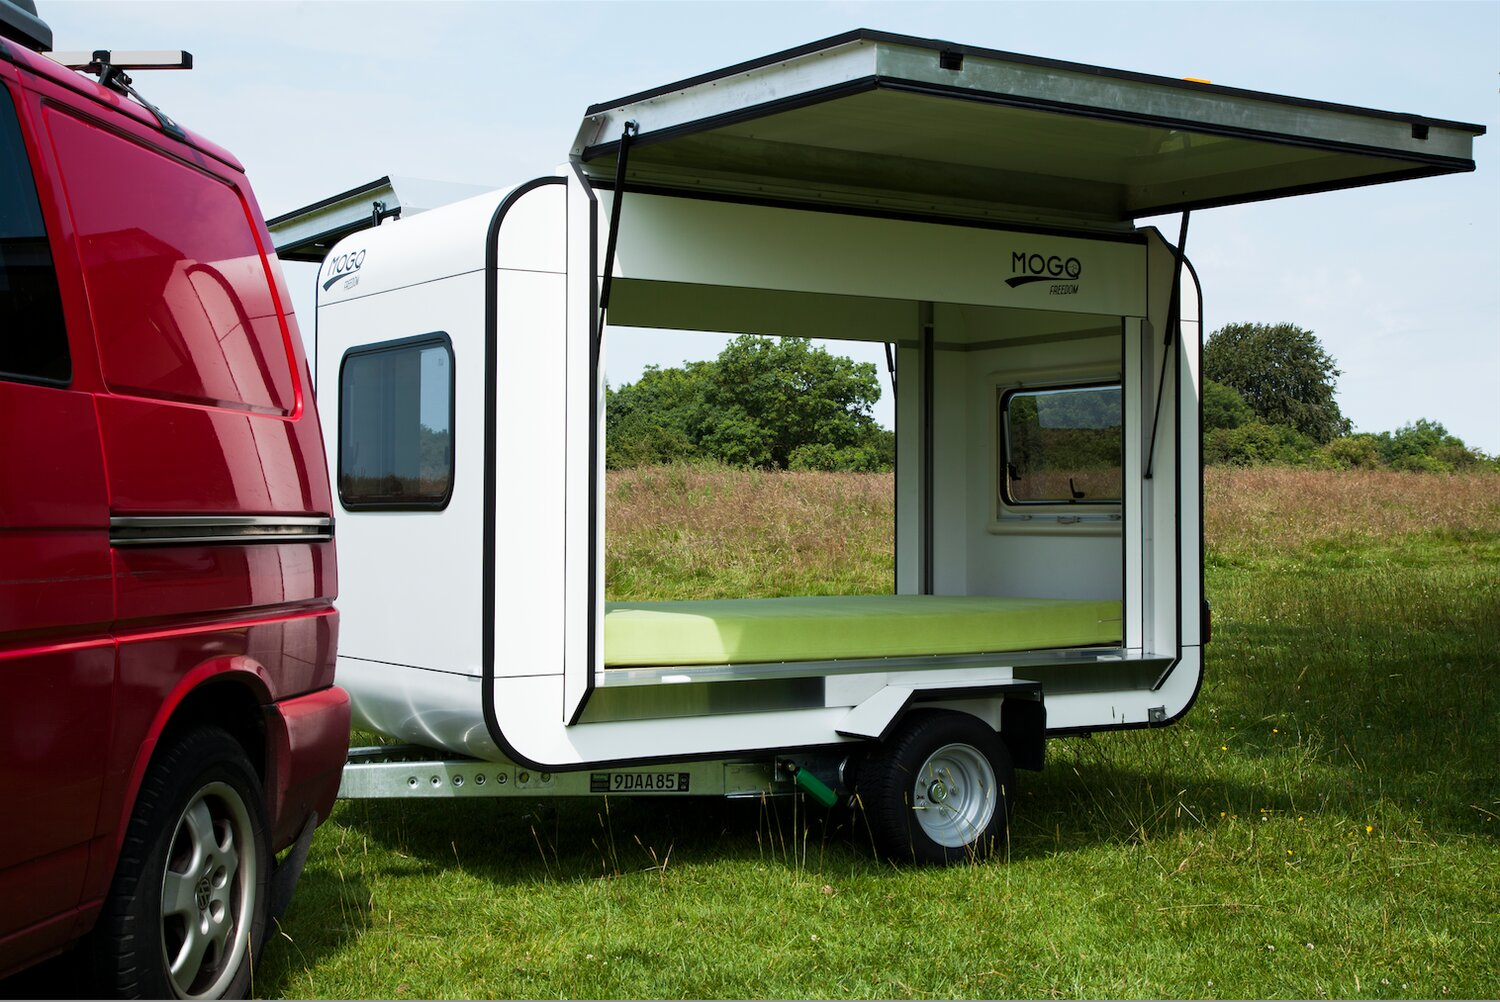 mogo freedom a tiny gull wing travel trailer - Tiny Camping Trailers